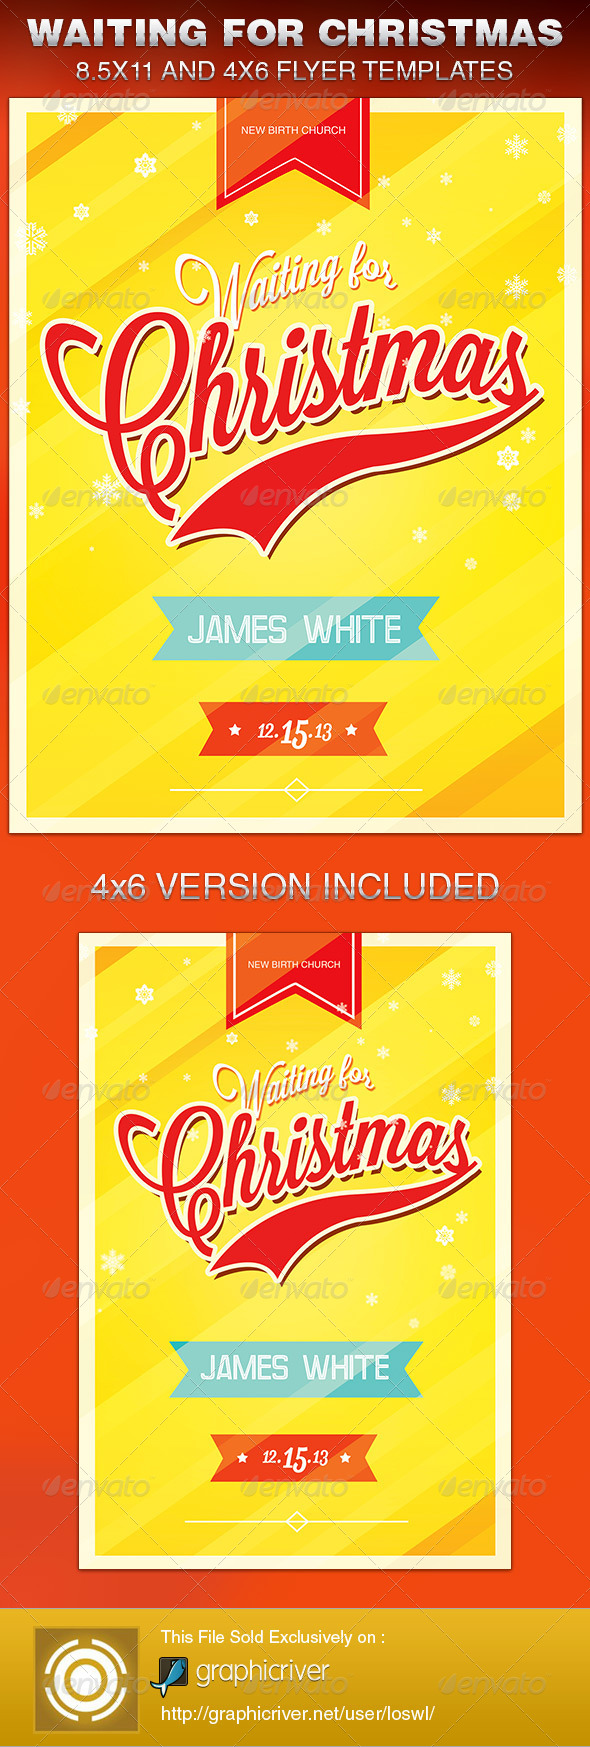 Waiting for Christmas Church Flyer Template - Church Flyers